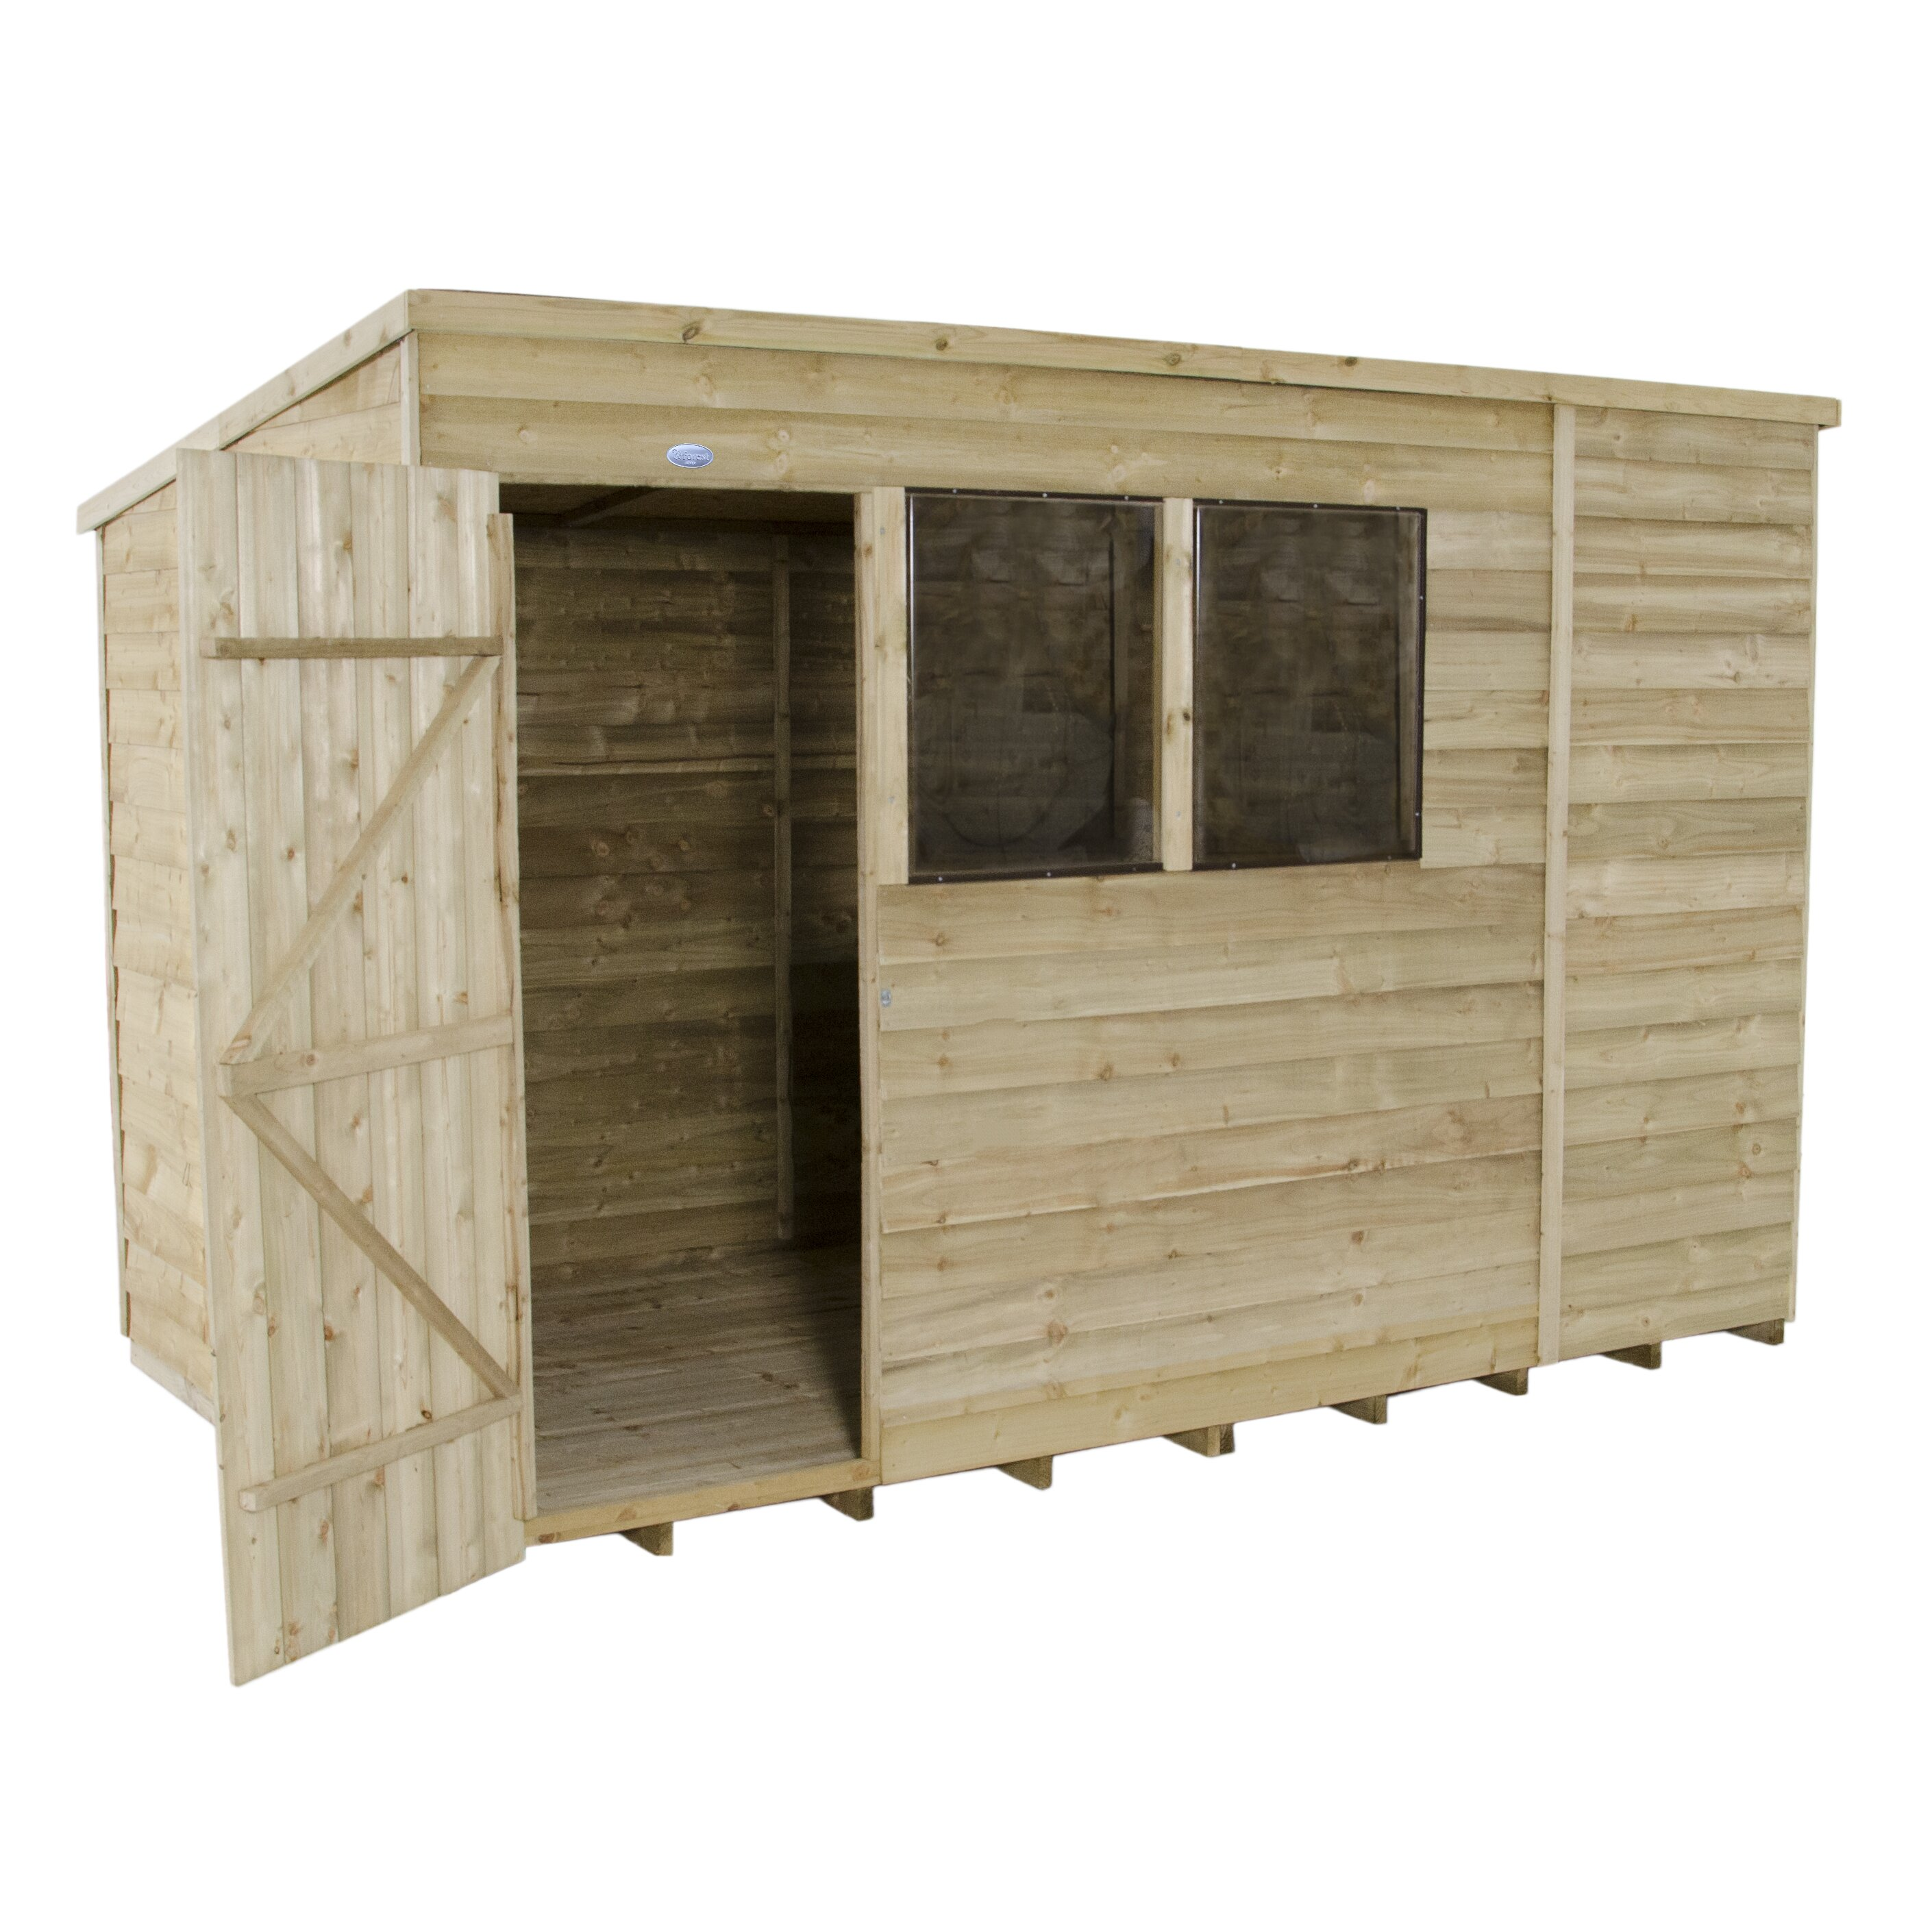 Forest garden 10 x 6 wooden storage shed wayfair uk for Wooden garden storage shed